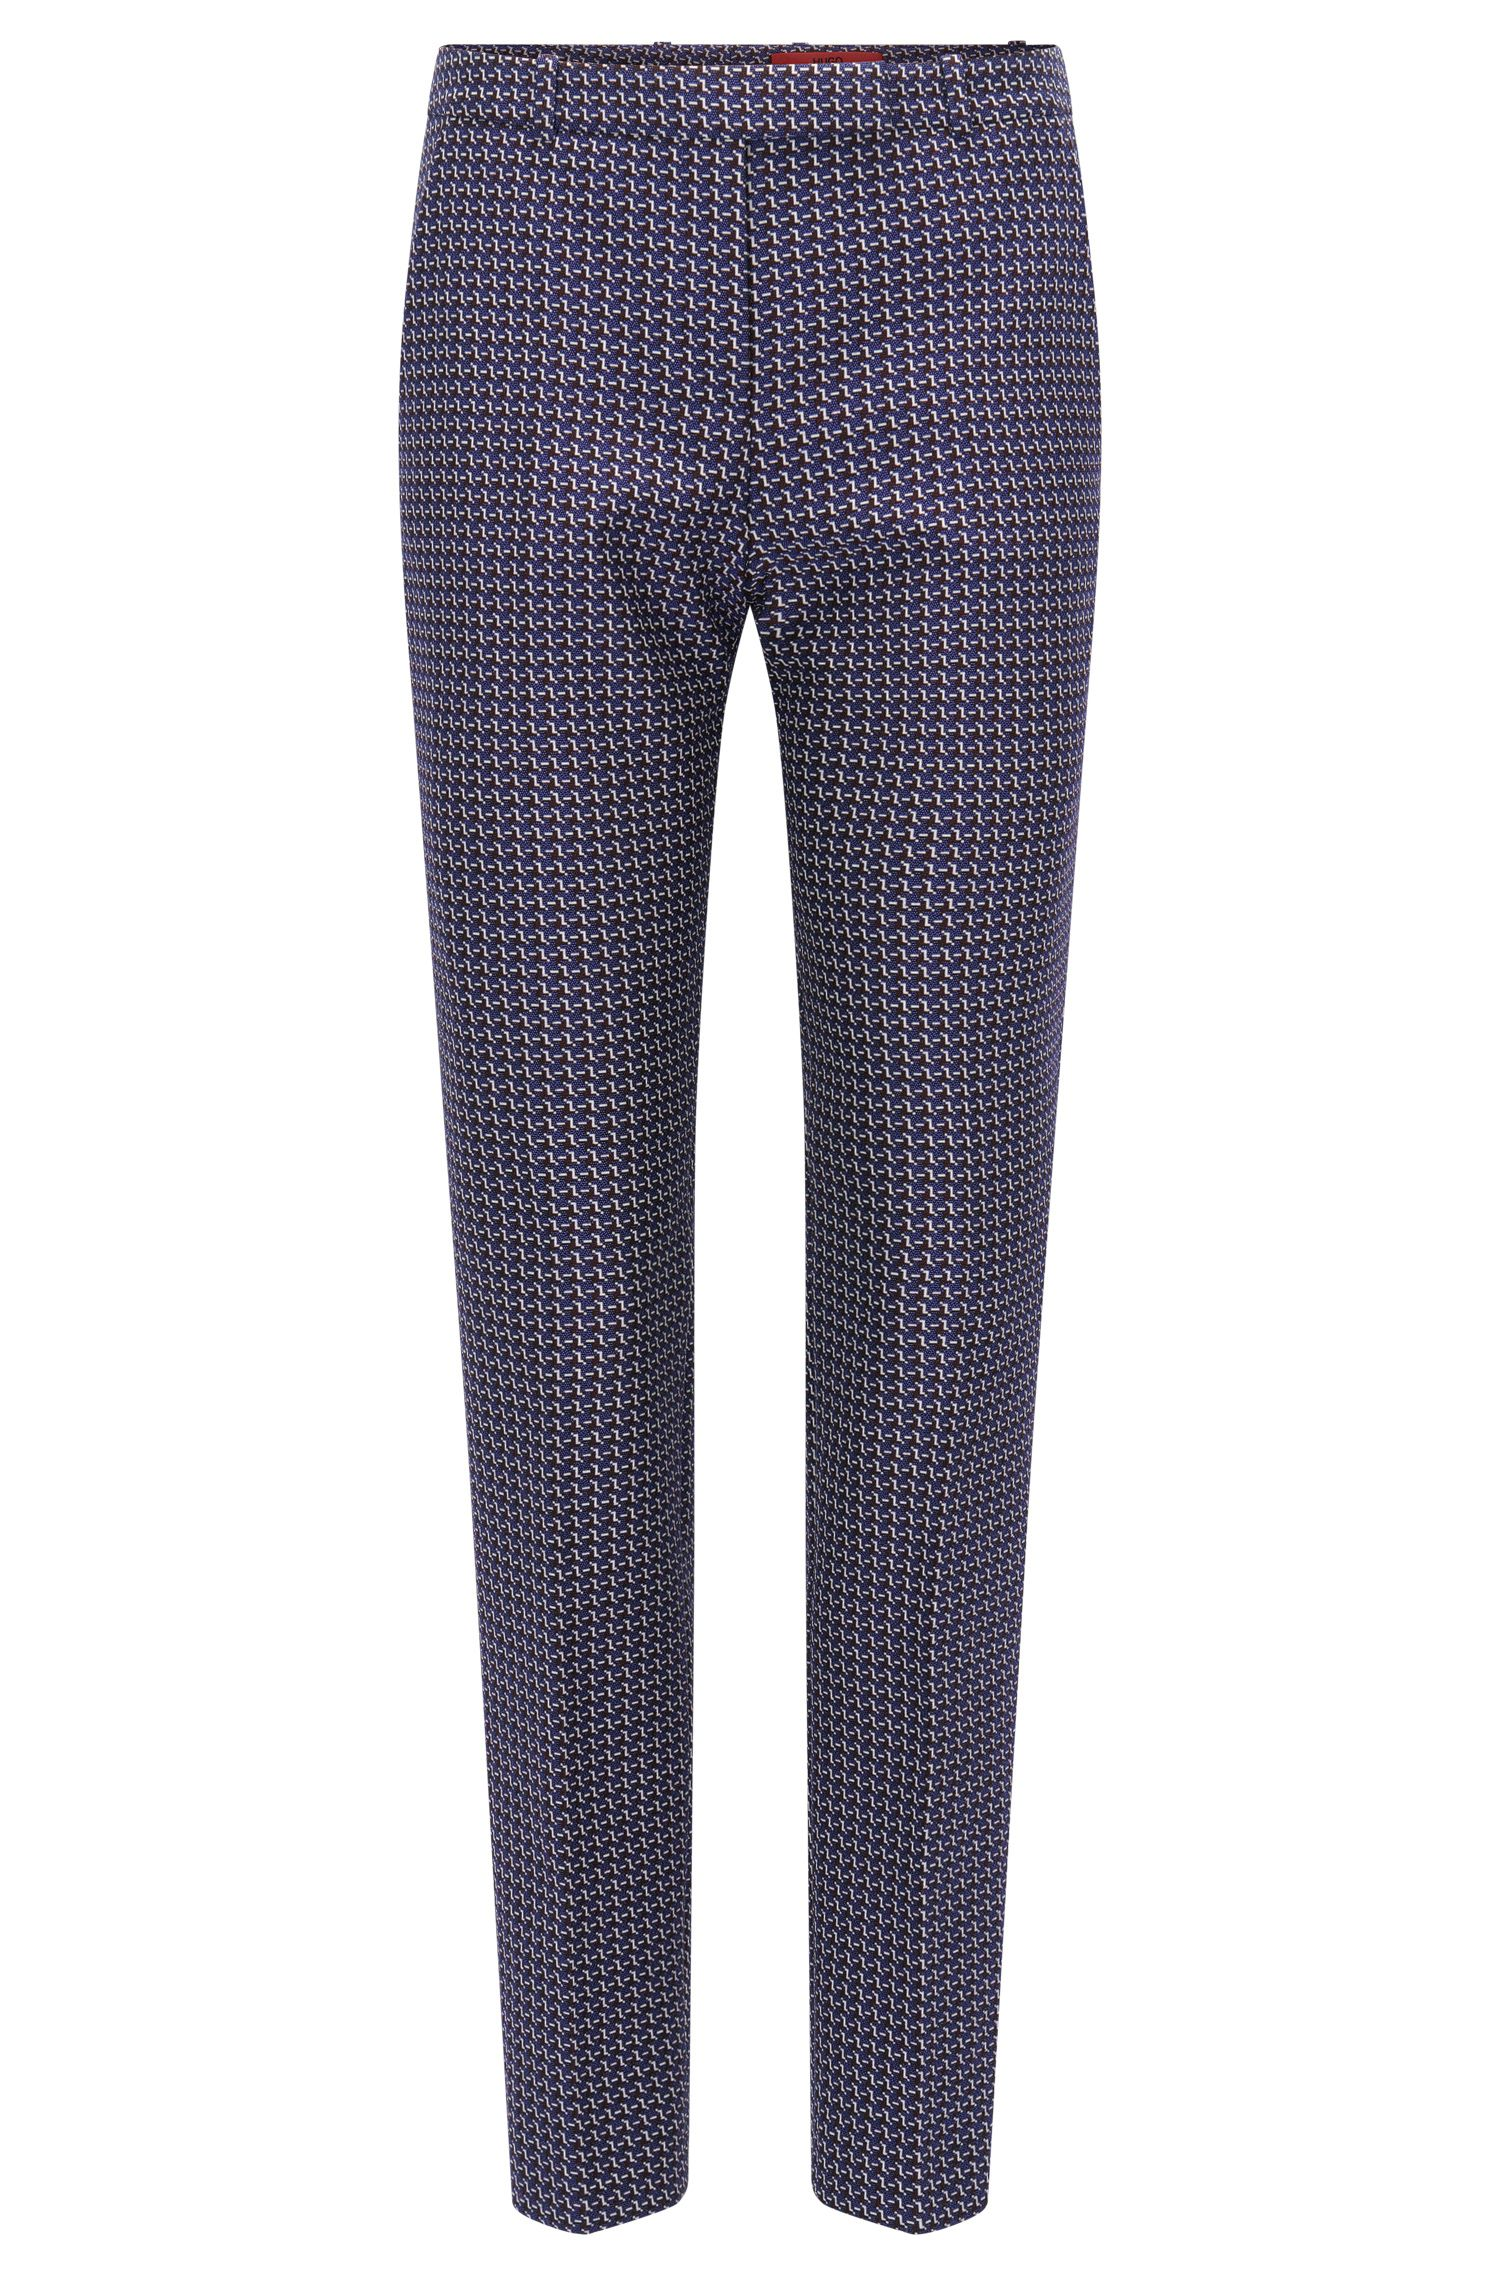 Geometric Stretch Cotton Pant | Harile